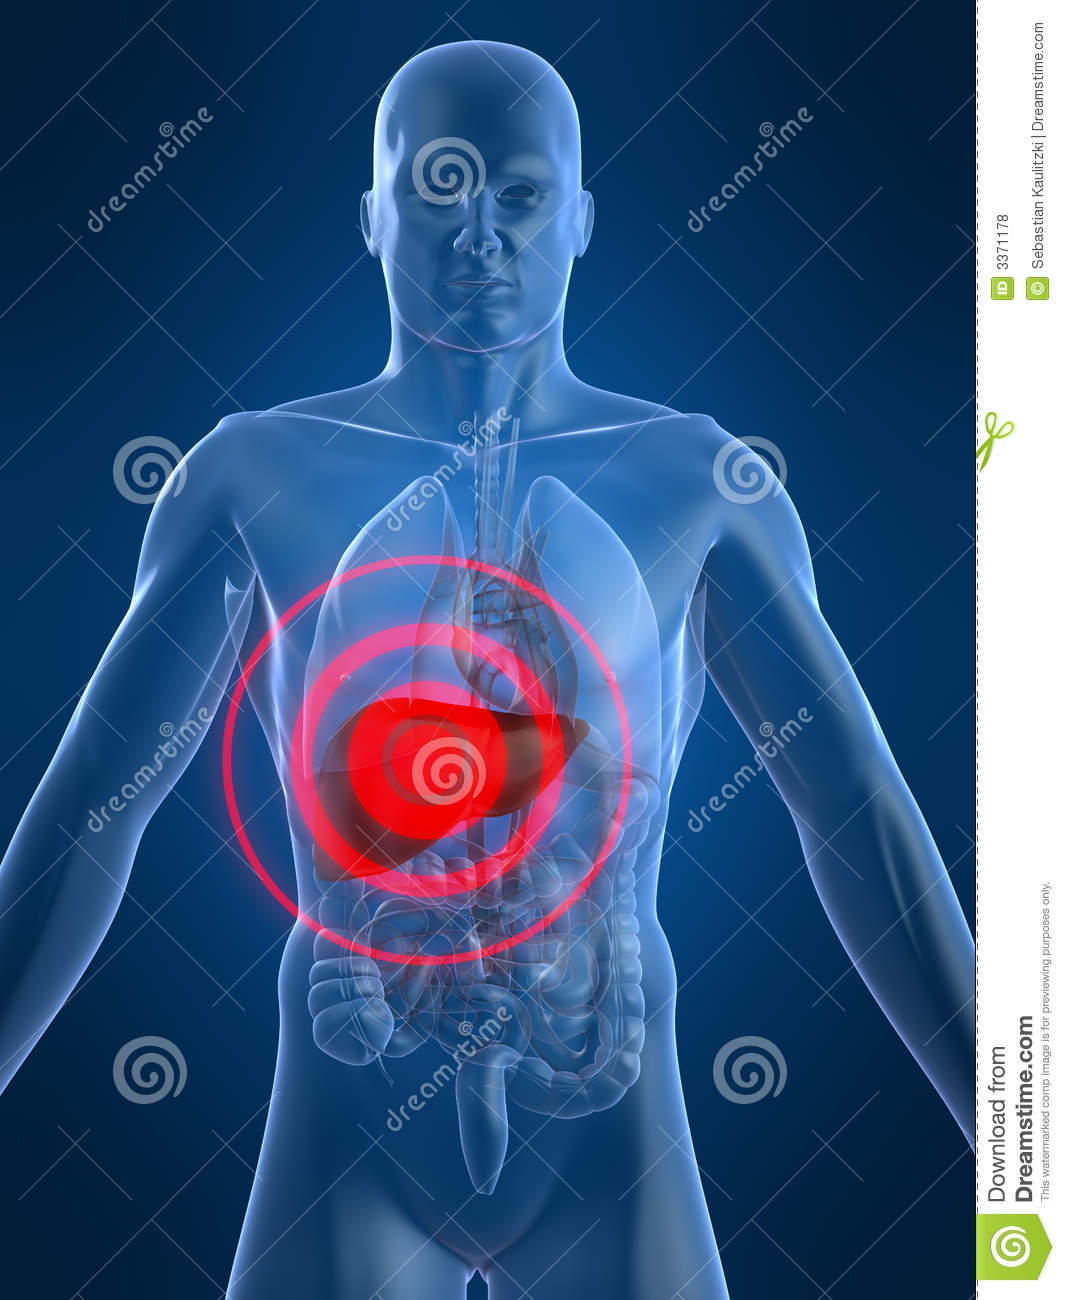 Royalty Free Stock Photos Liver Inflammation Image3371178